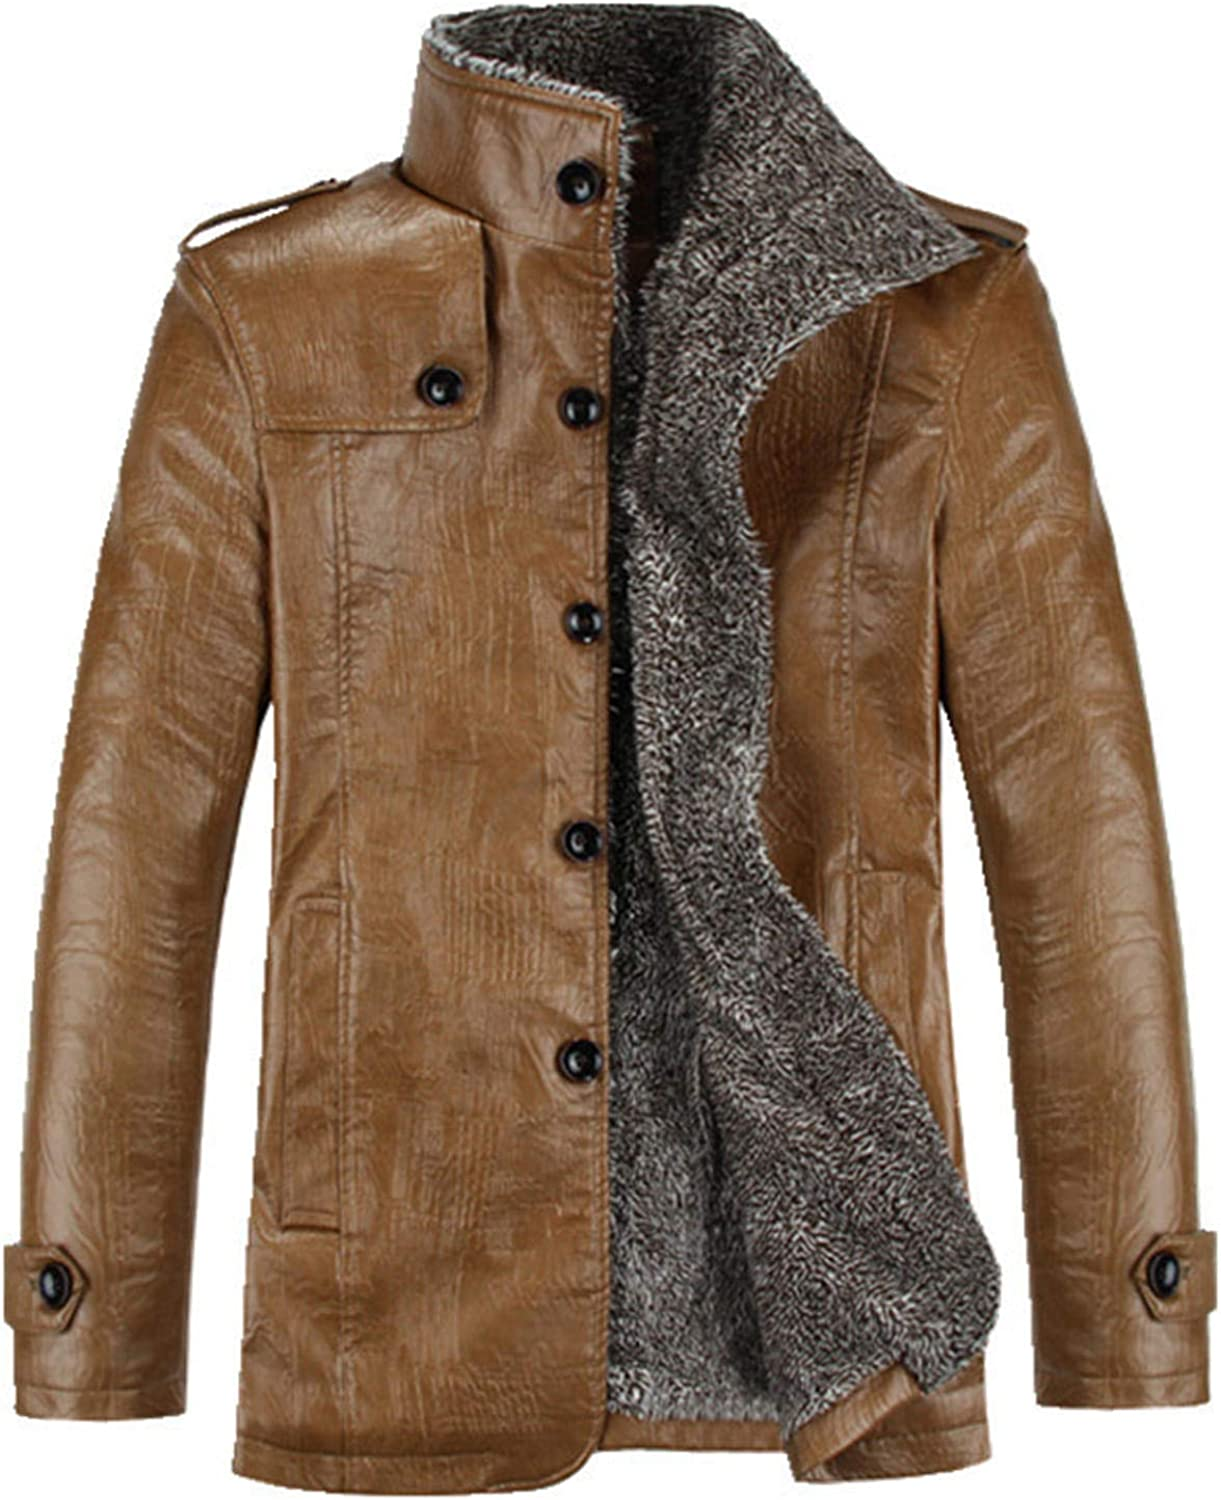 Soluo Men's Hardy Bane Knight Rises Fur Shearling Pea Coat Distressed Brown Trench Leather Jacket Coat (Khaki,4X-Large)